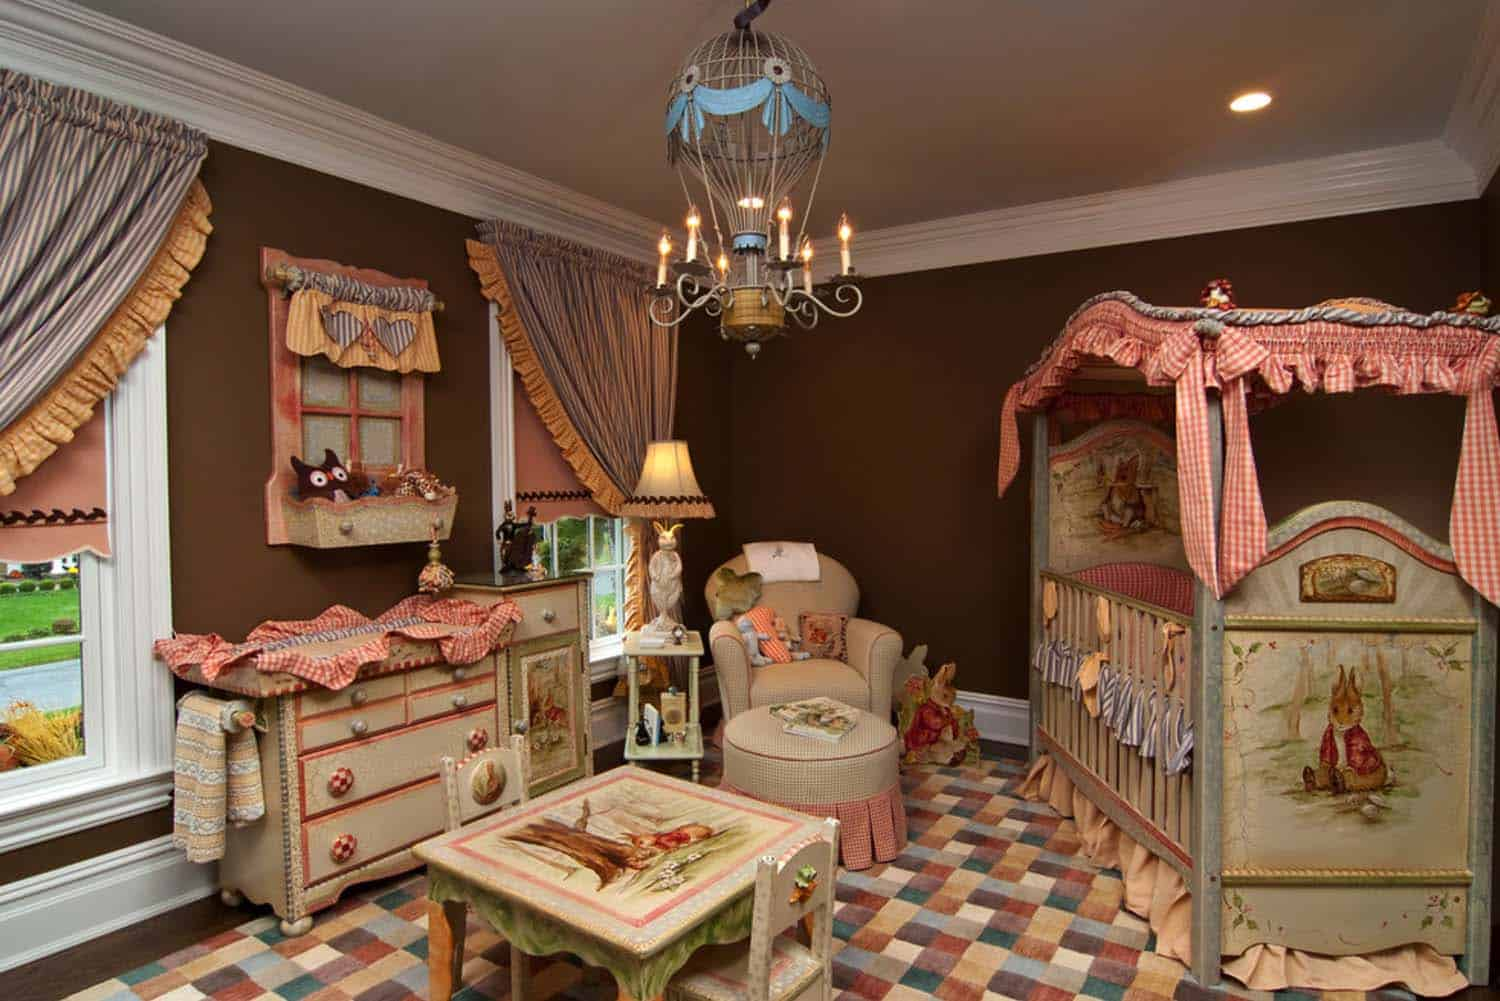 Stylish Nursery Decorating Ideas-41-1 Kindesign